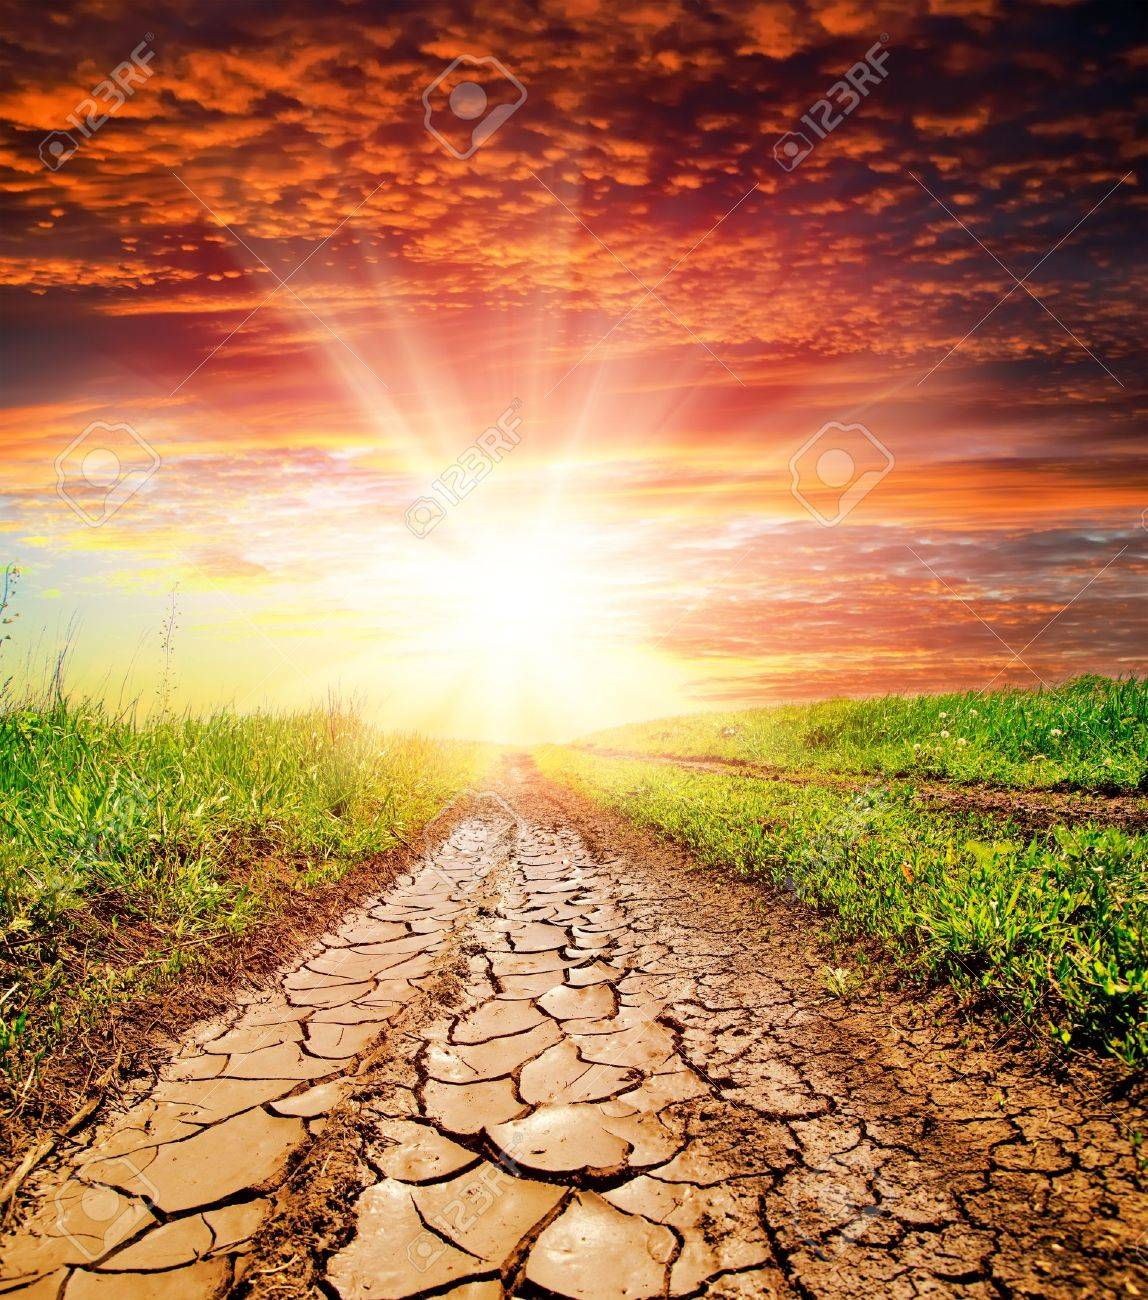 POEMAS SIDERALES ( Sol, Luna, Estrellas, Tierra, Naturaleza, Galaxias...) - Página 17 9754043-sunset-over-cracked-rural-road-in-green-grass-and-cloudy-sky-Stock-Photo